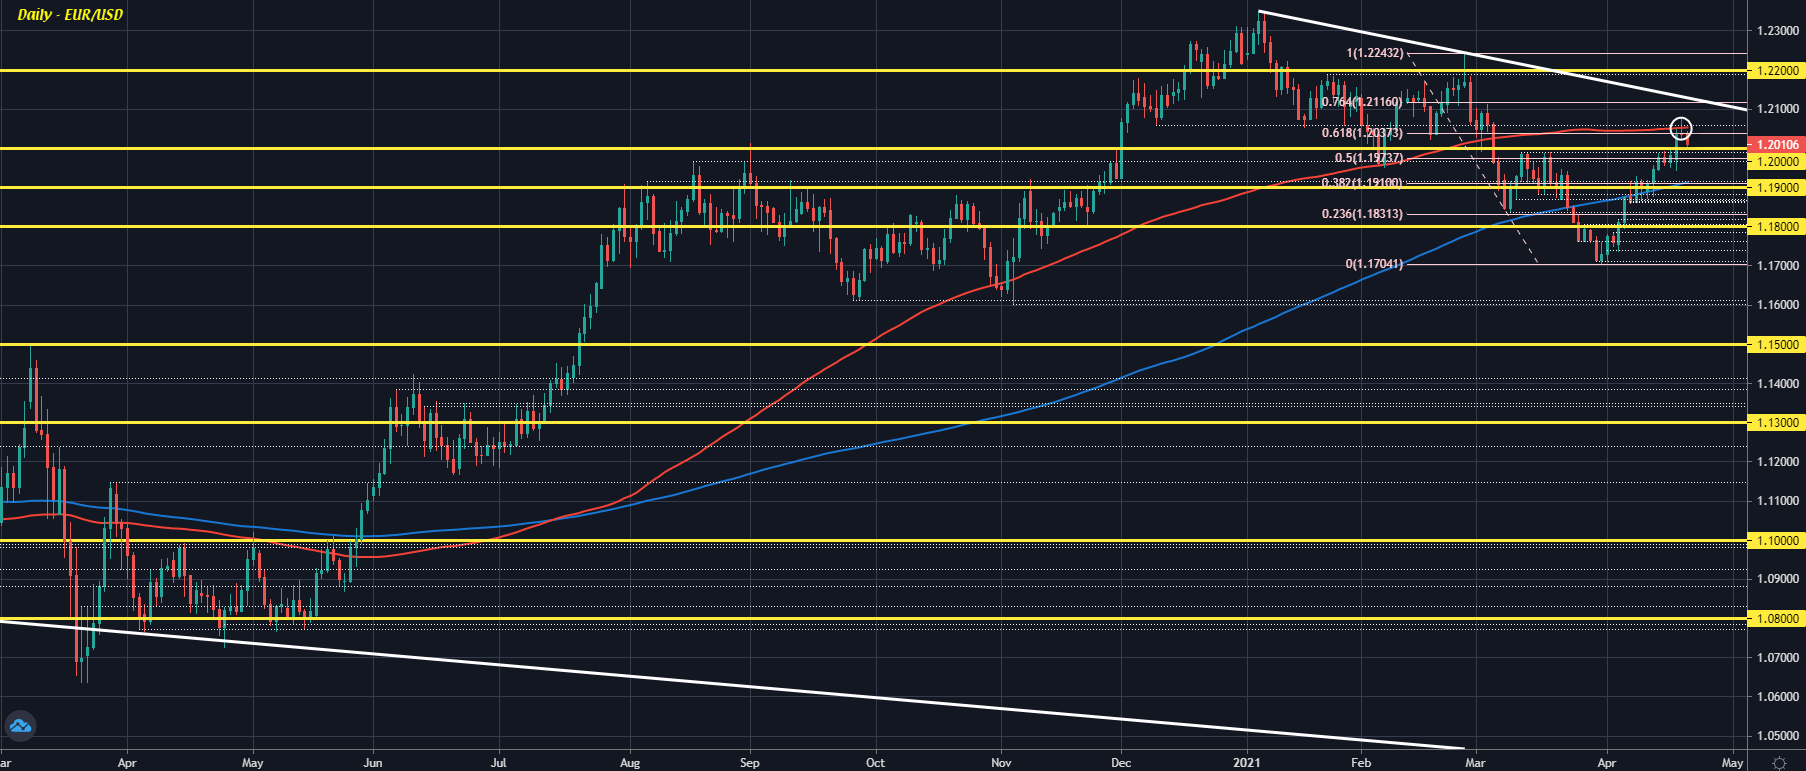 EUR/USD retreats further, tests near-term support close to 1.2000 level